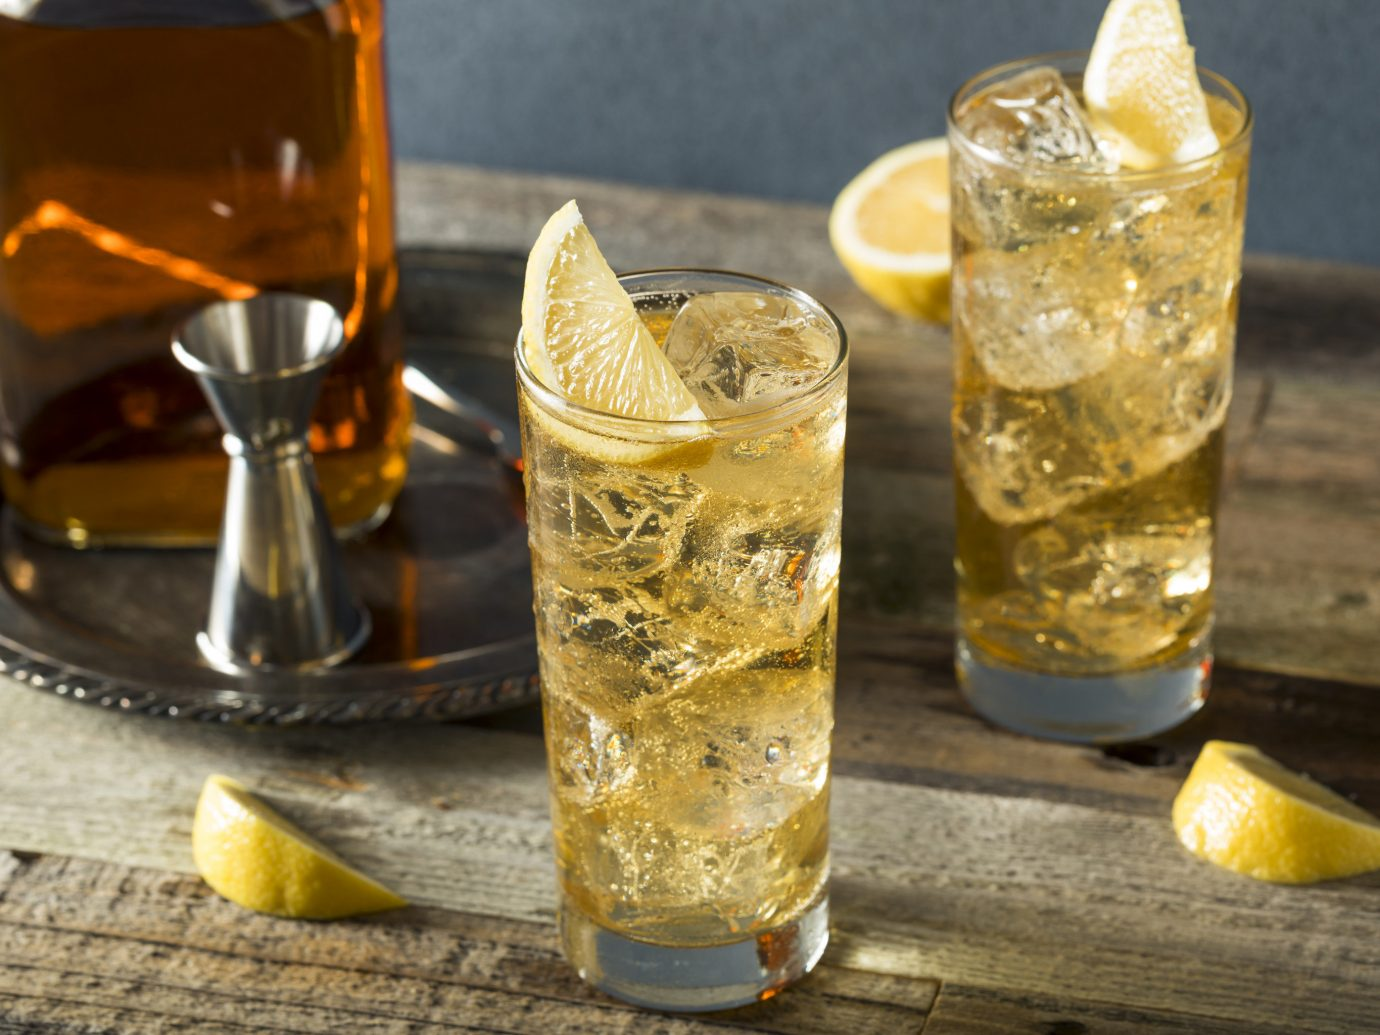 Food + Drink cup Drink alcoholic beverage yellow cocktail distilled beverage mint julep citrus produce cuba libre highball beverage alcohol glass